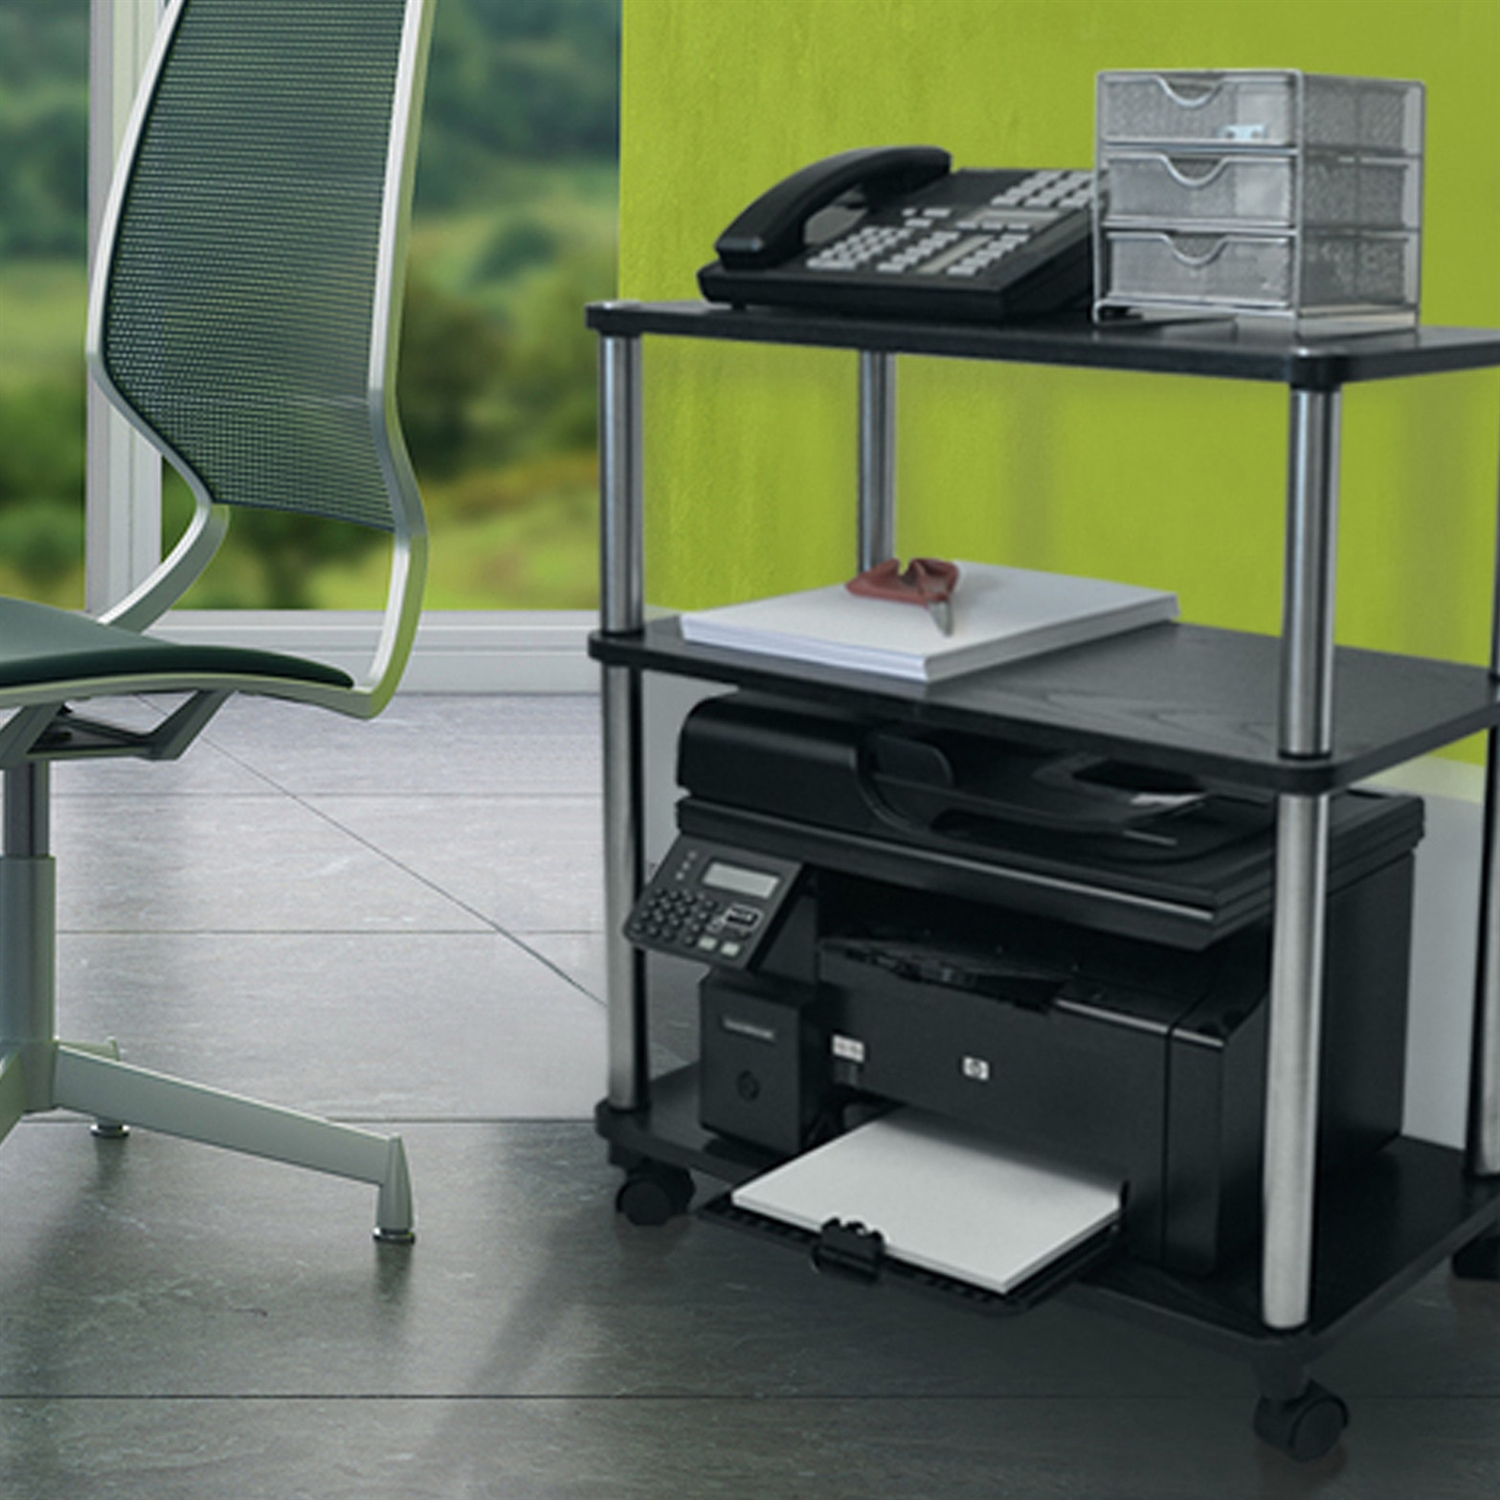 3-Shelf Mobile Home Office Caddy Printer Stand Cart in Black ...